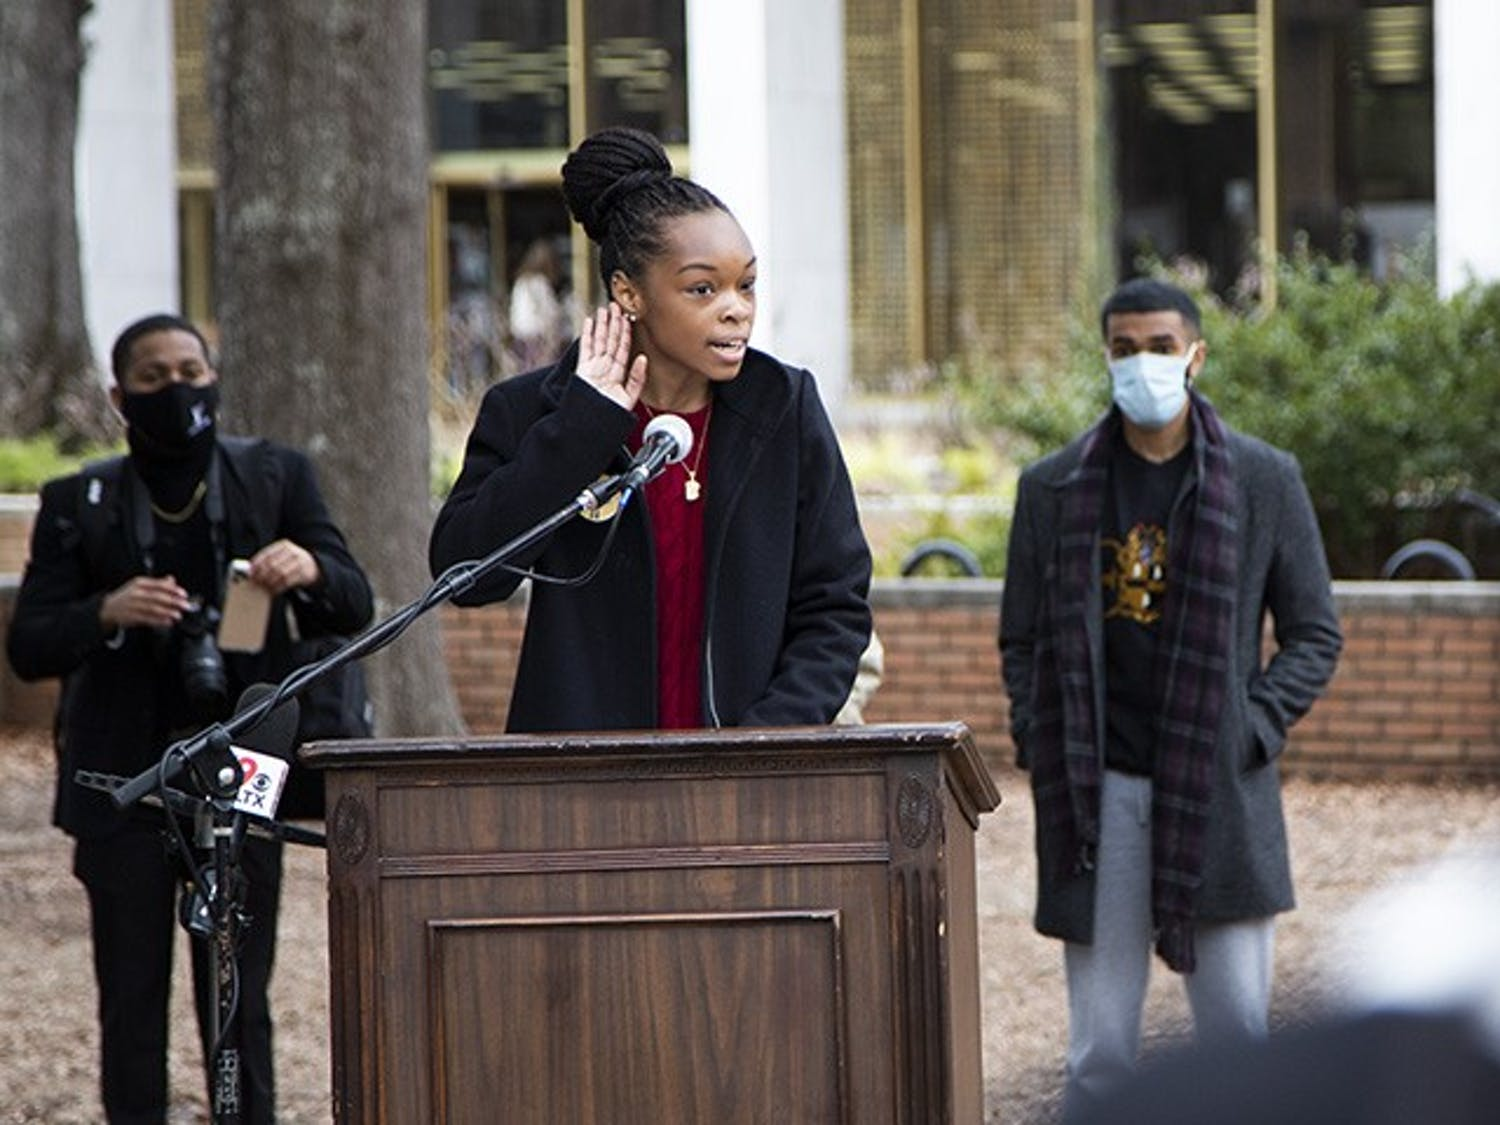 USC's NAACP chapter President Caley Bright gives a speech at the Aim to Rename press conference on Feb. 17, 2021.